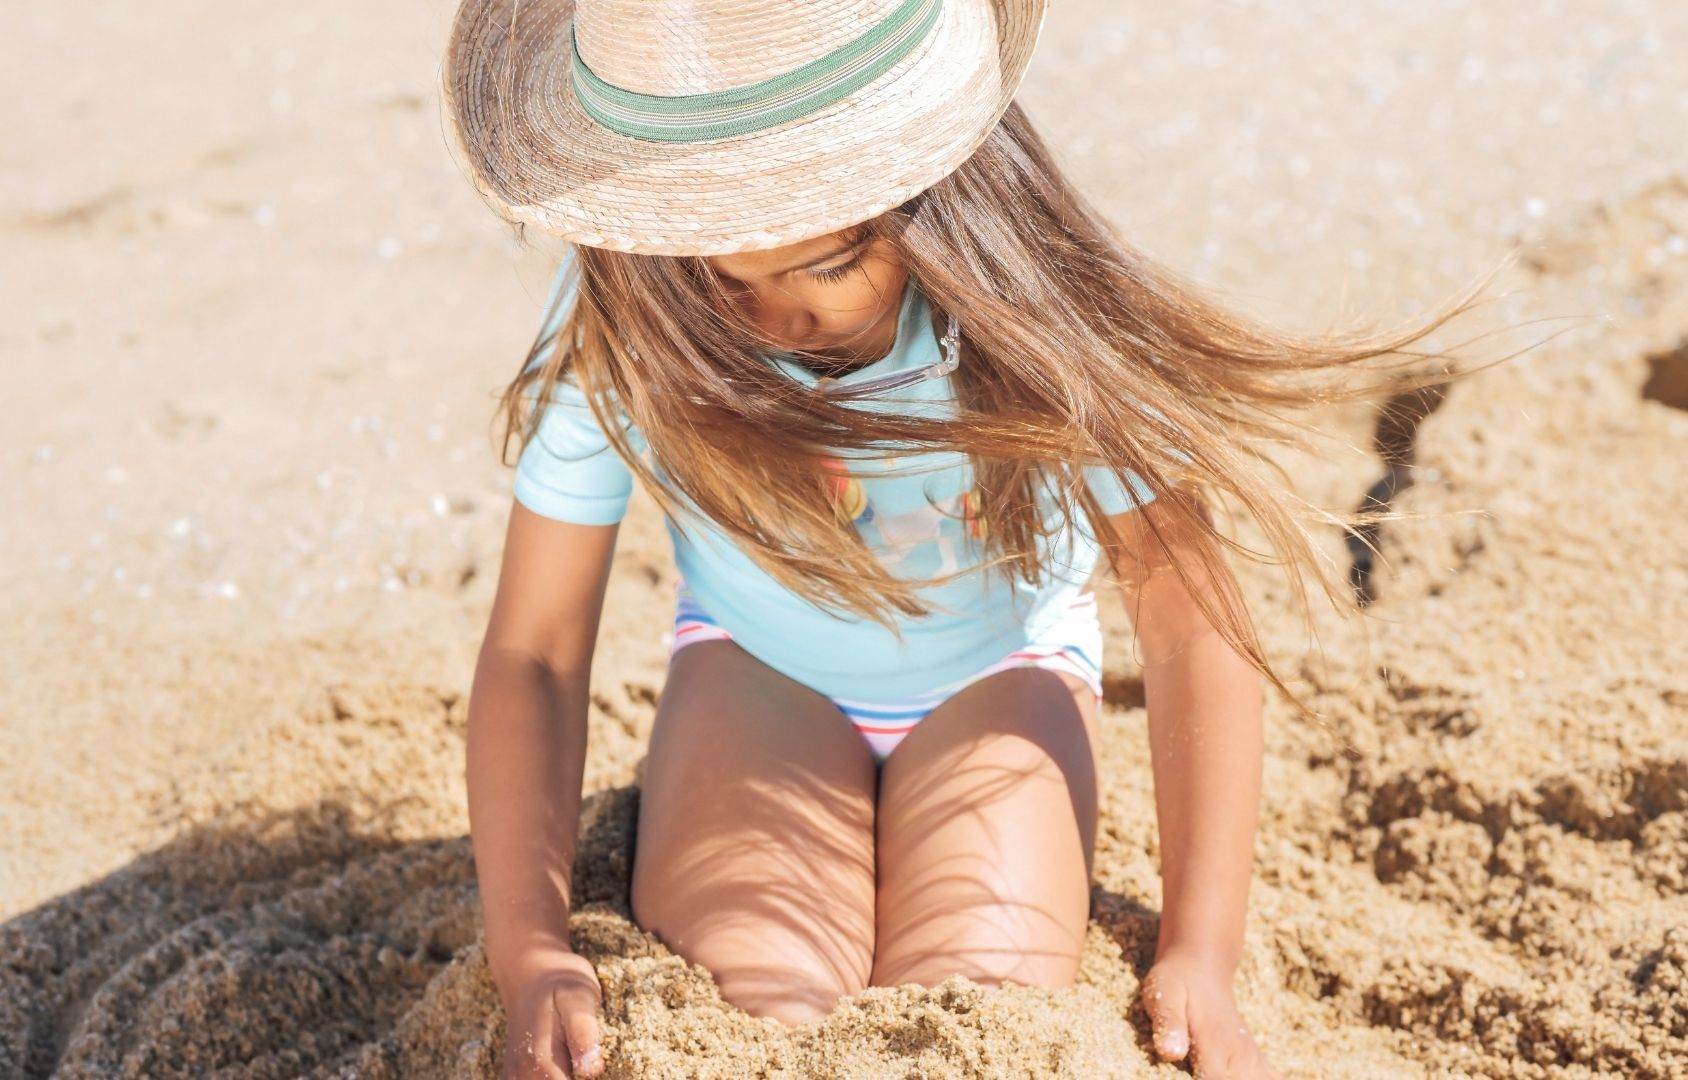 Girl sitting on the sand in sunscreen and a hat